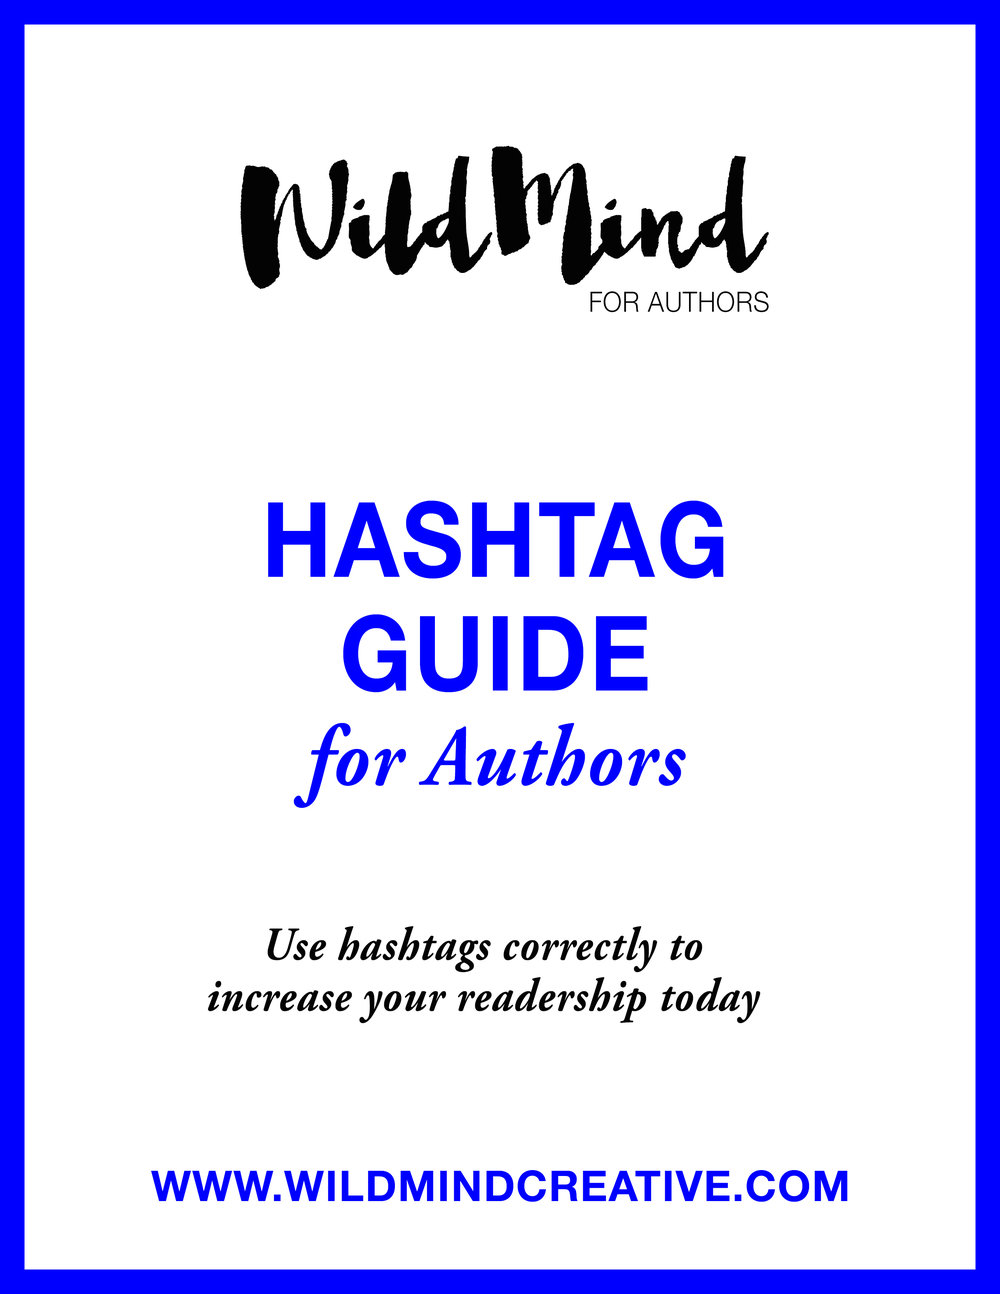 Hashtag Guide for Authors.jpg